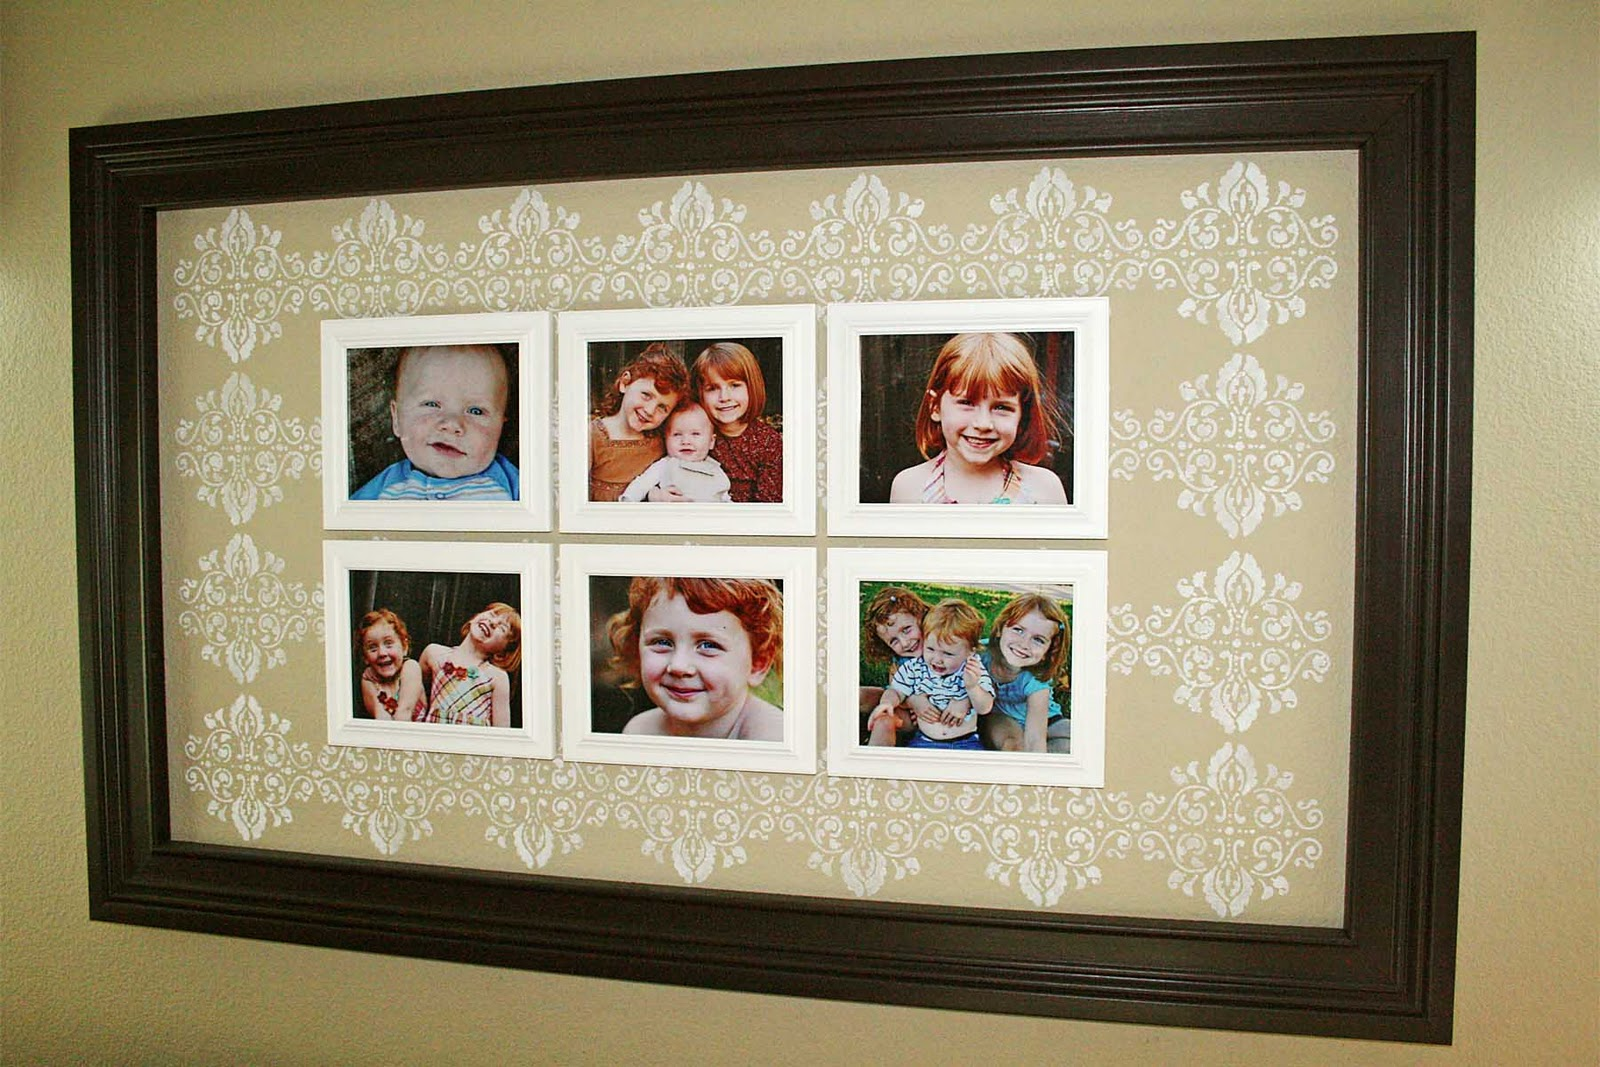 carrot top x 3: frames within a frame